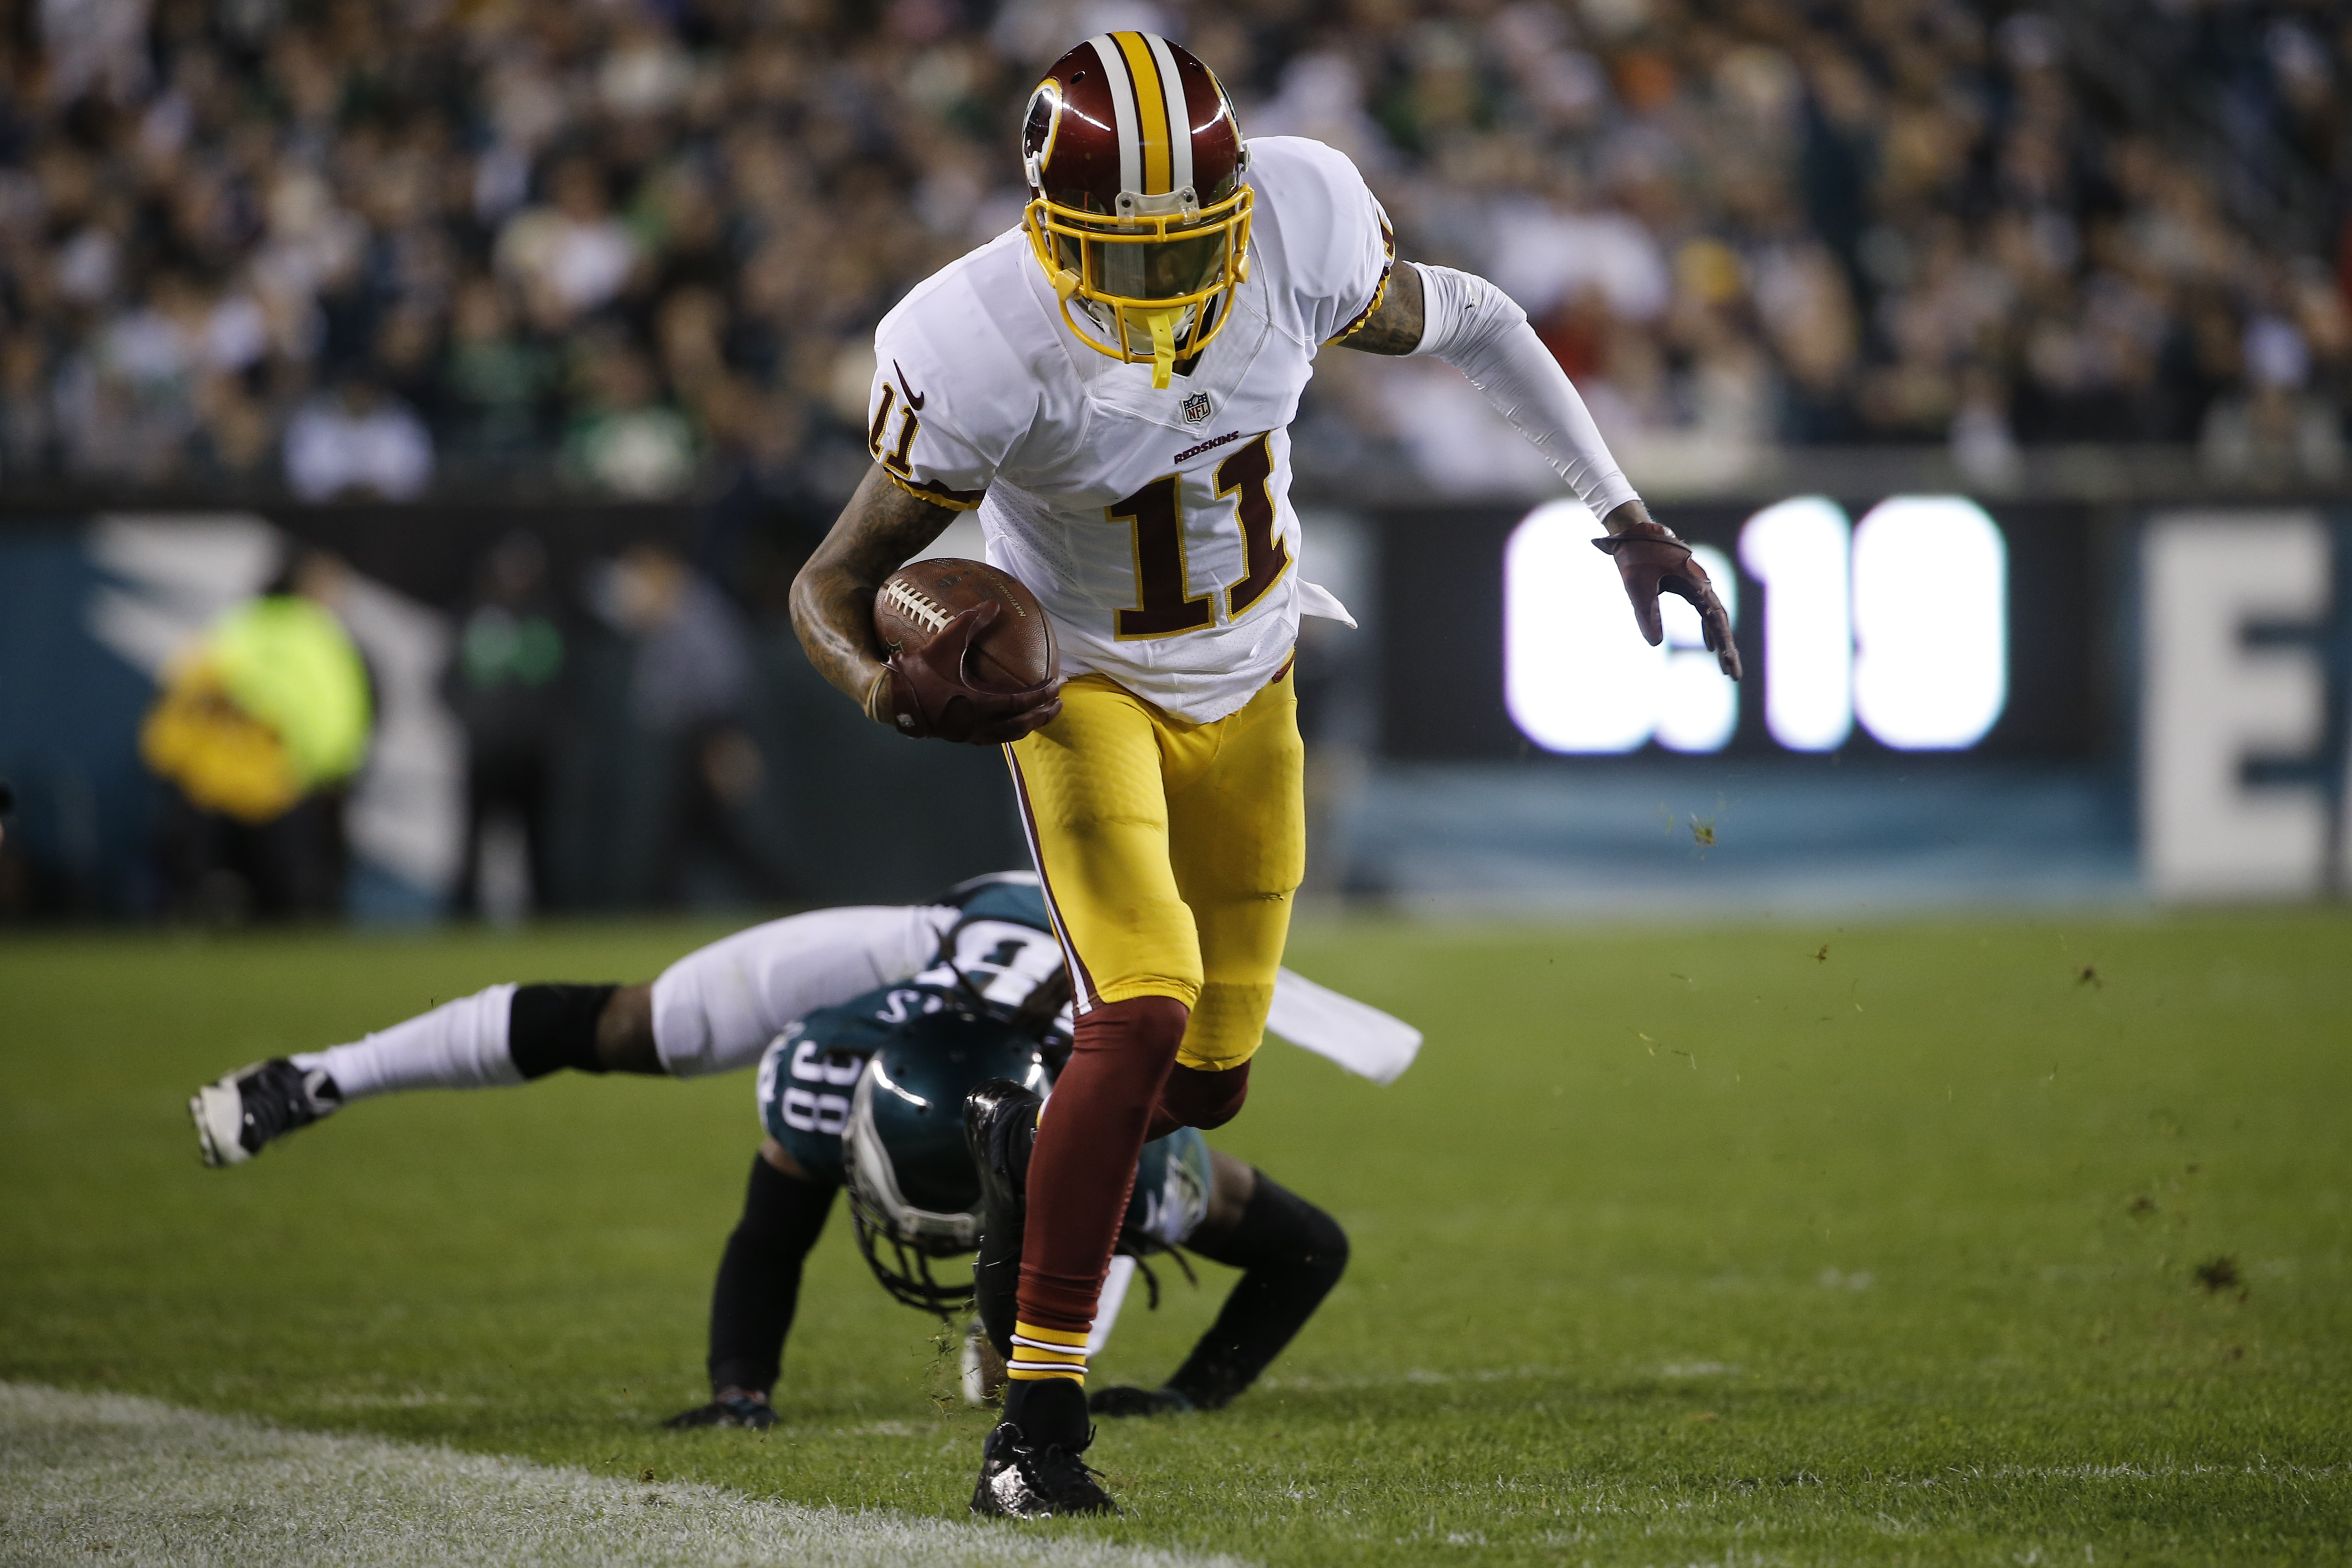 In this photo taken Dec. 26, 2015, Washington Redskins' DeSean Jackson runs after a catch in the first half of an NFL football game against the Philadelphia Eagles in Philadelphia. Jackson is keeping quiet and letting his play do the talking at Washington